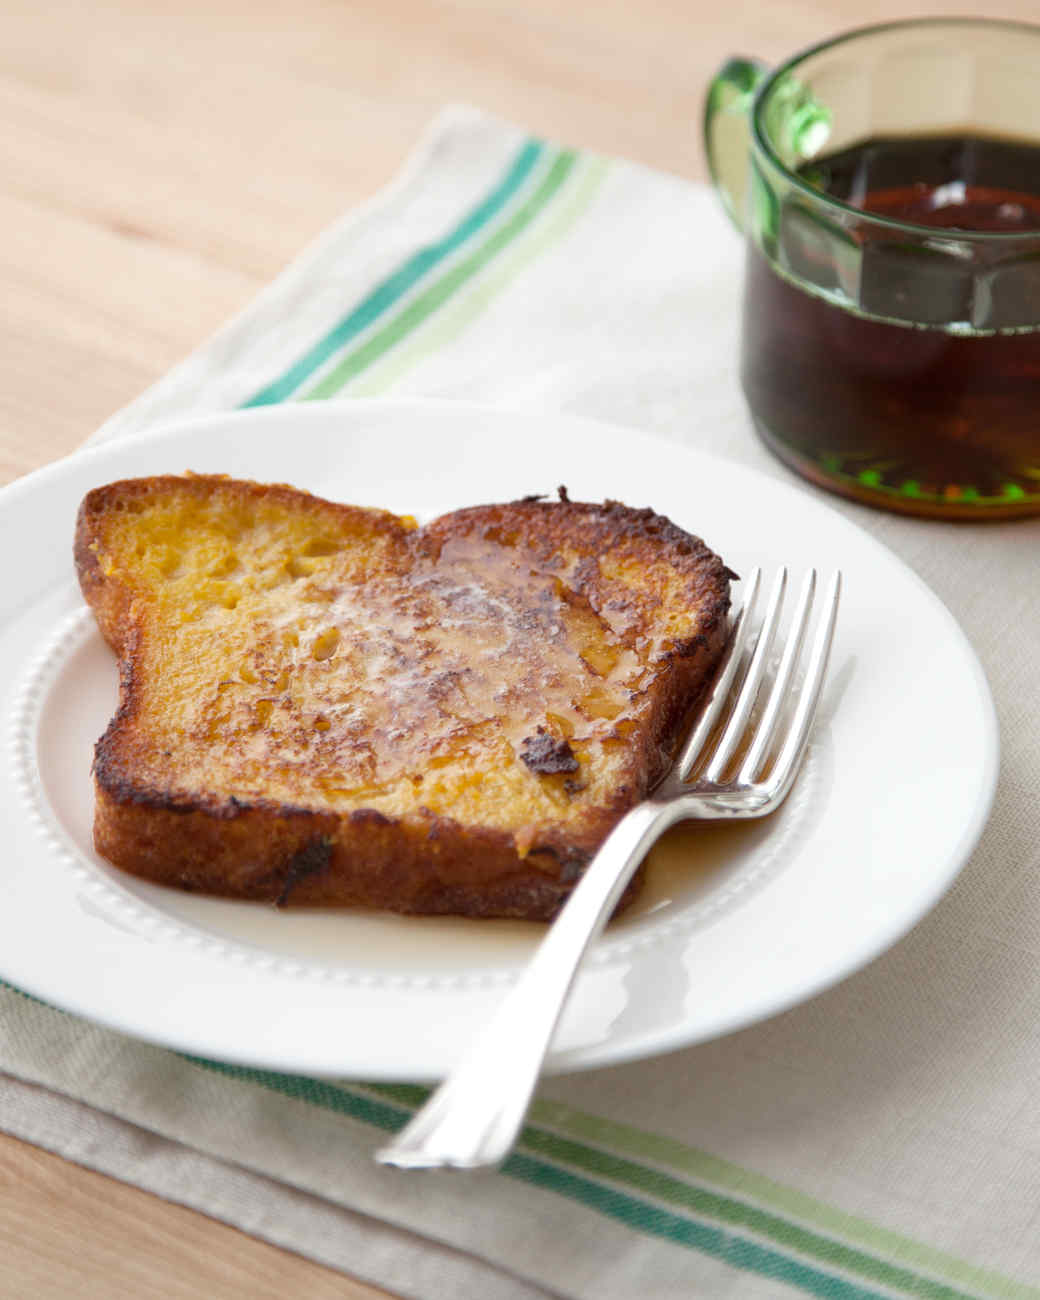 french-toast-mb2003-0708-d106317.jpg